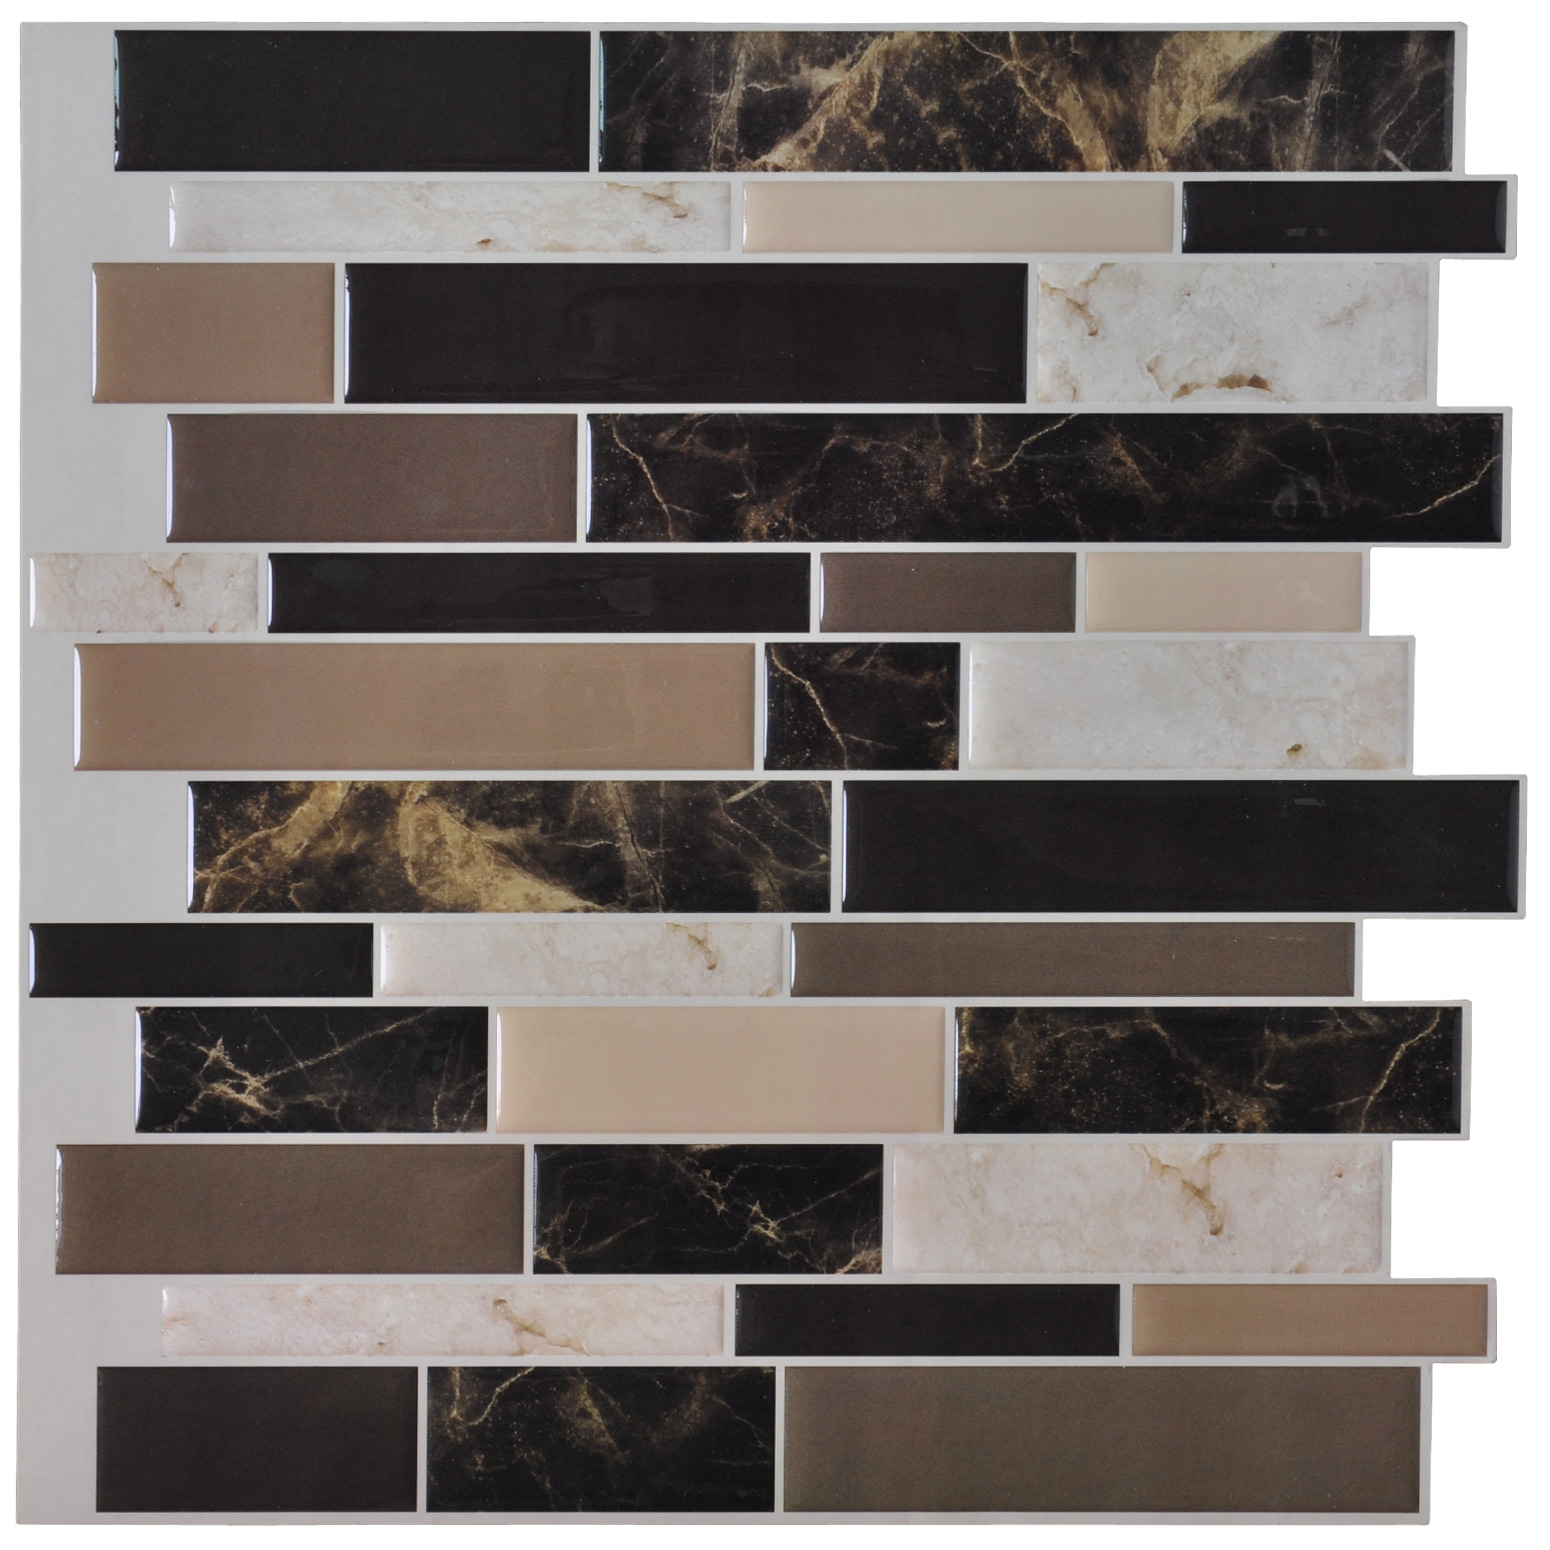 A17024 - Vinyl Self-Adhesive Backsplash Tiles for Kitchen, 10